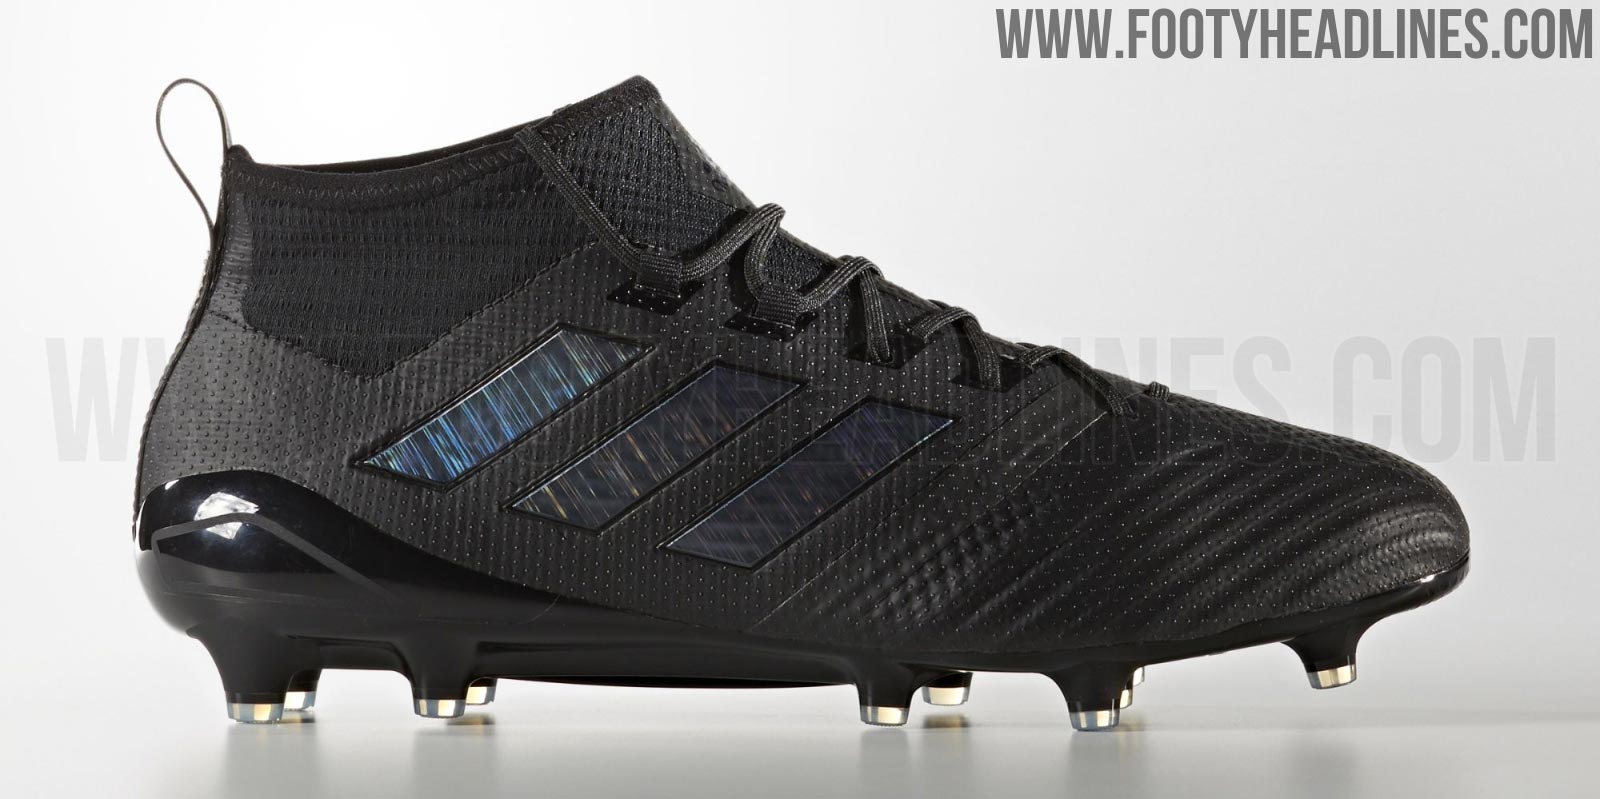 falso síndrome Odio  Buy cheap adidas blackout soccer cleats >Up to OFF50% Discounts